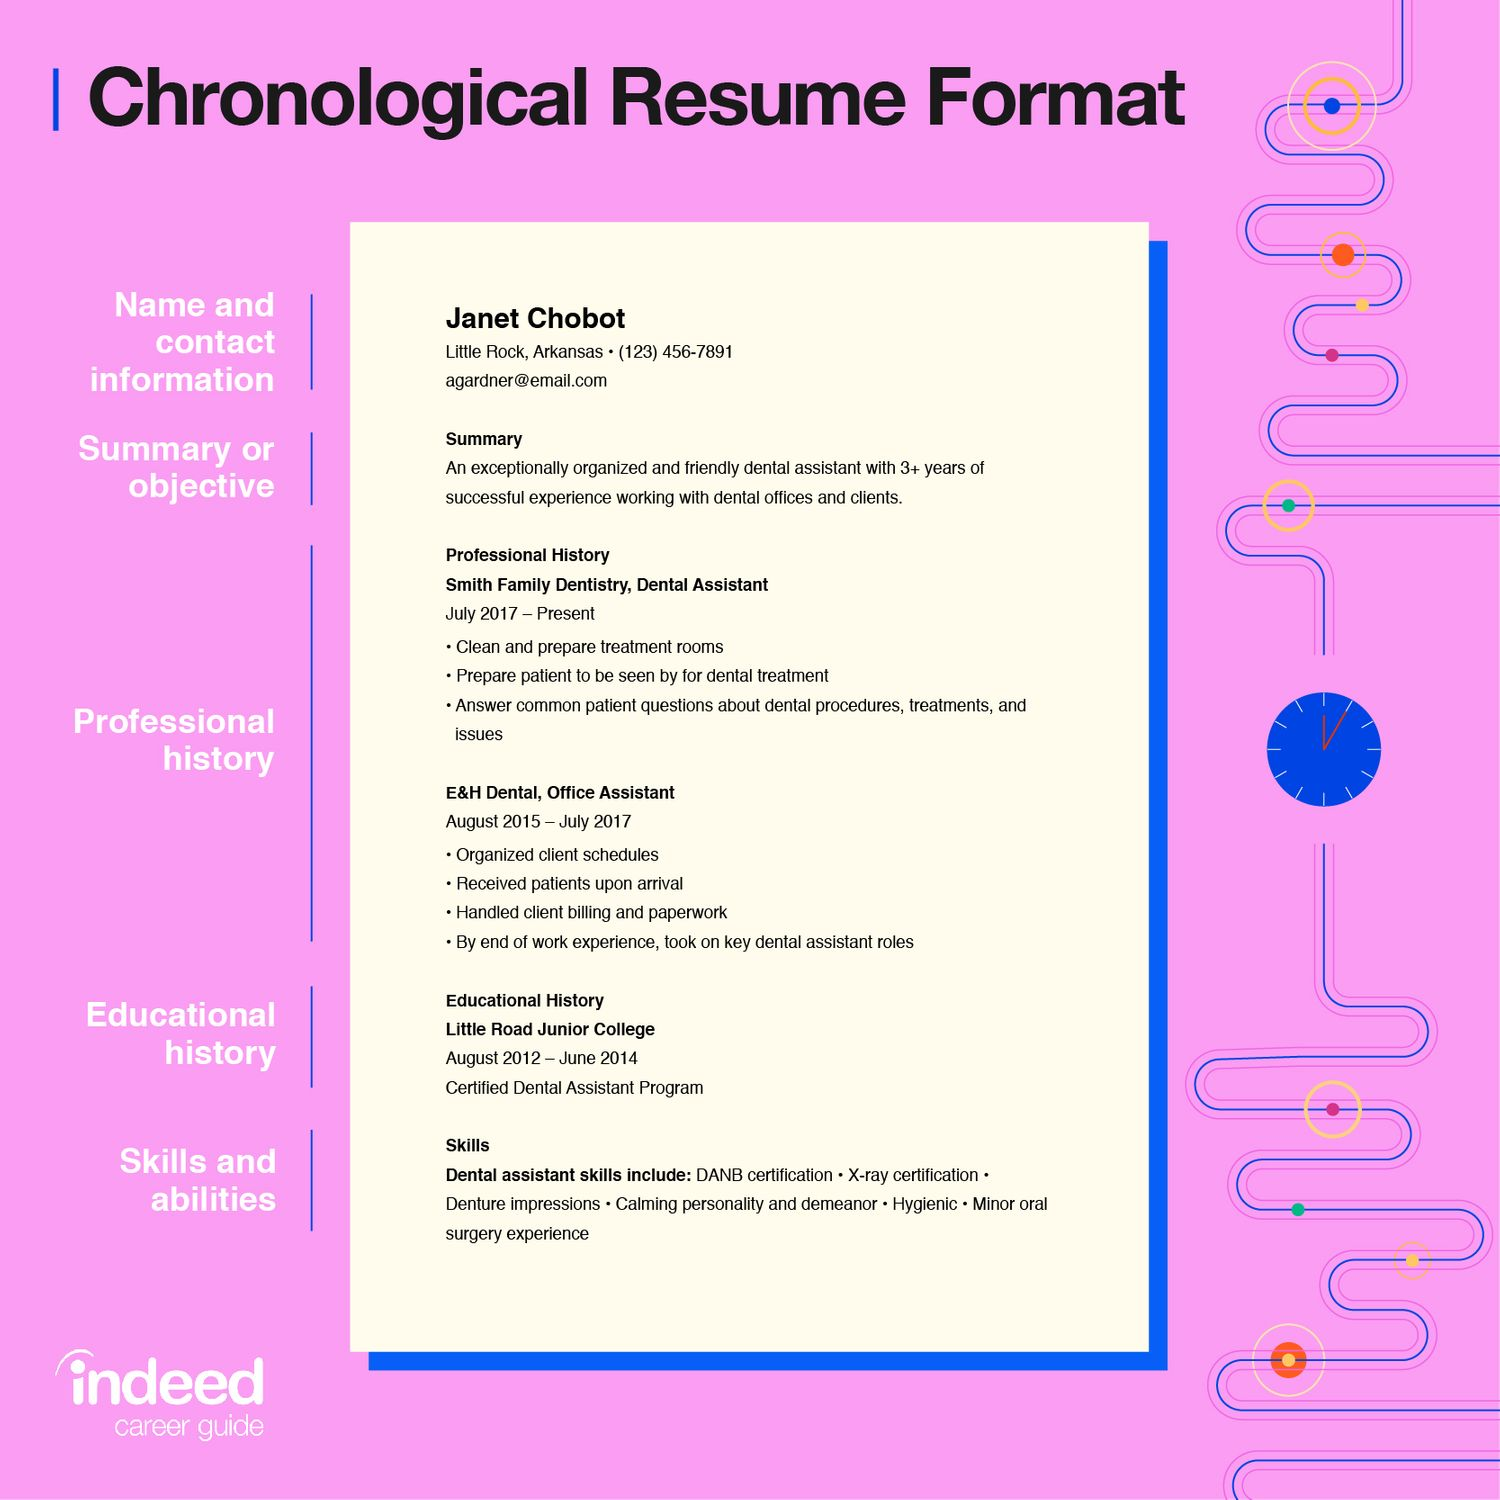 to make resume with examples indeed ways your better resized free chronological template Resume Ways To Make Your Resume Better